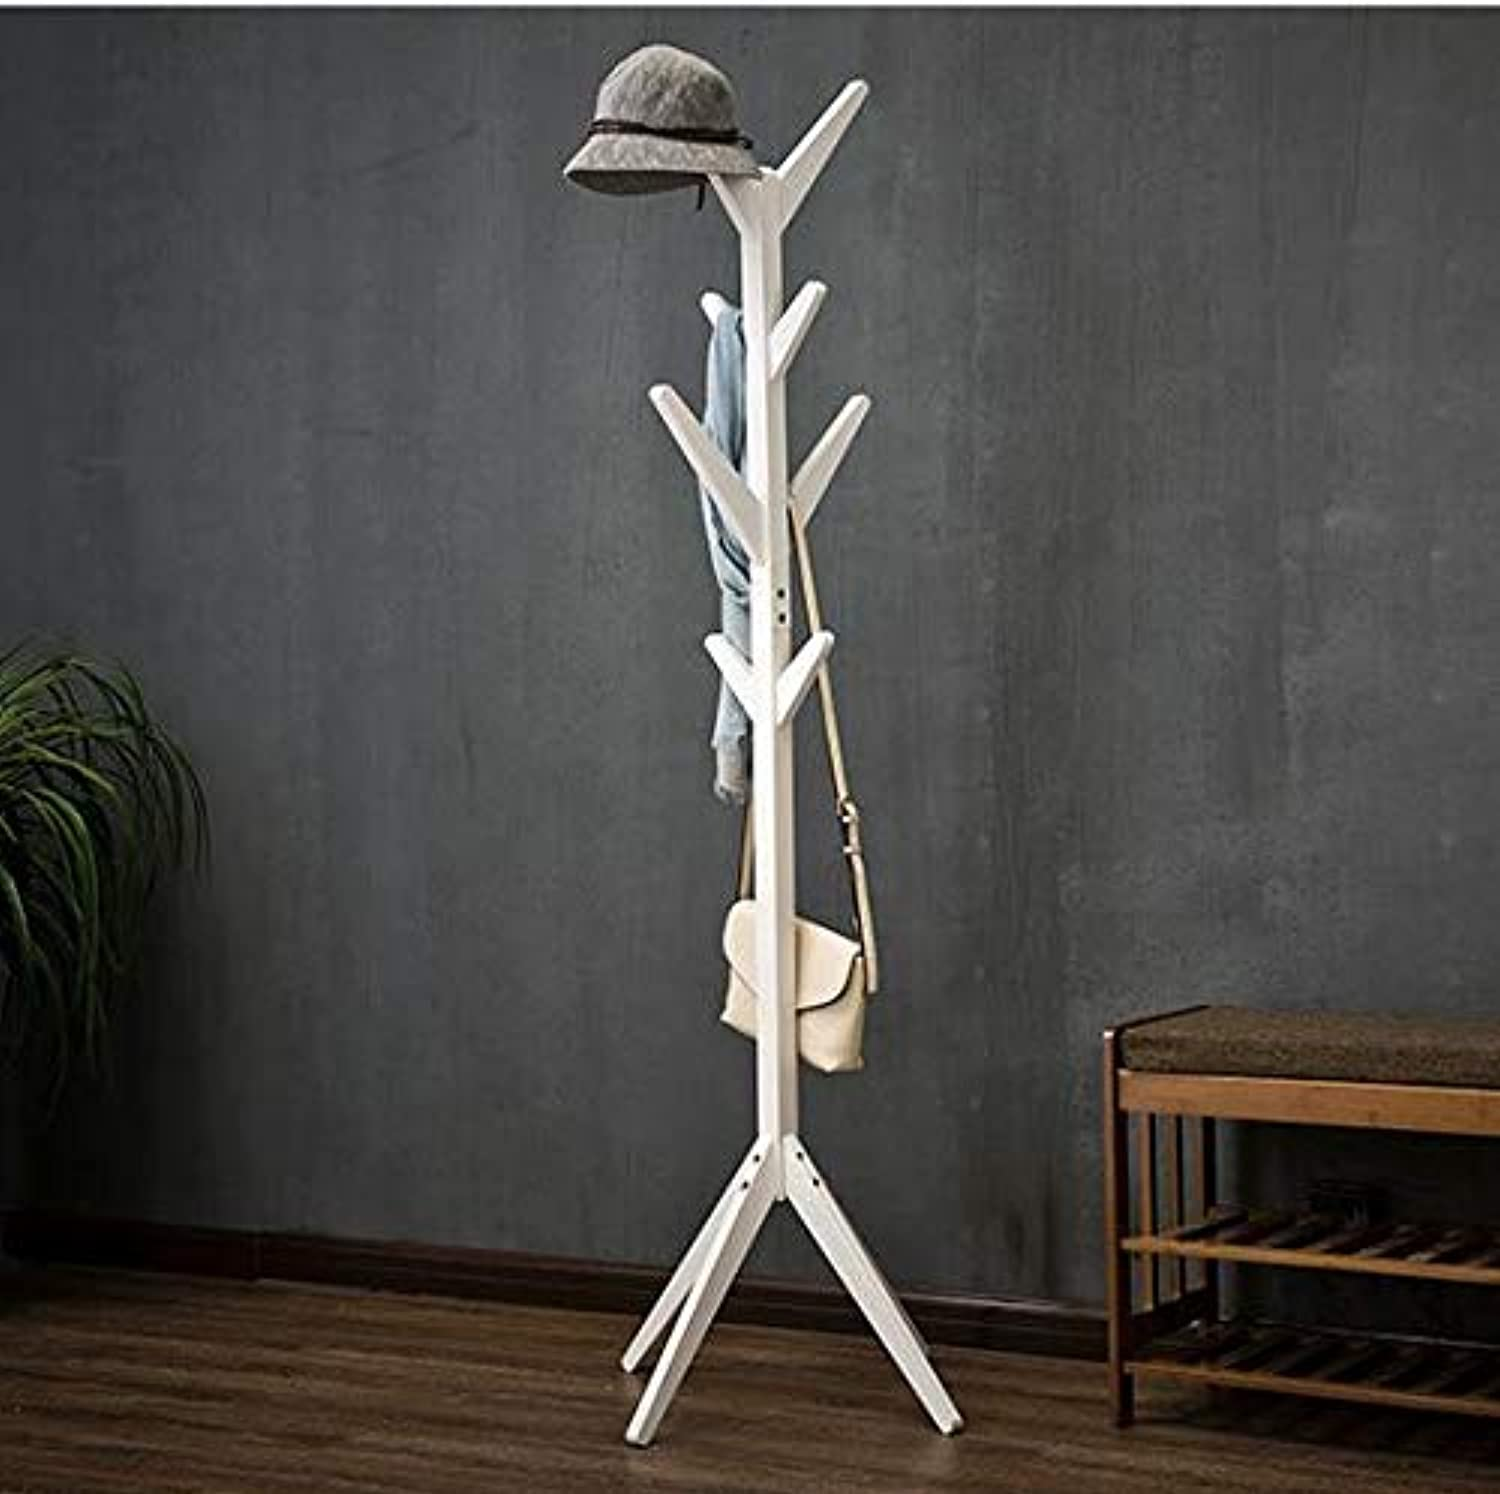 Wooden Coat Stand Tree twig Hat and Coat Rack for Entryway Hallway Bedroom Closet Wardrobe 8 Hooks 175CM Solid Wood